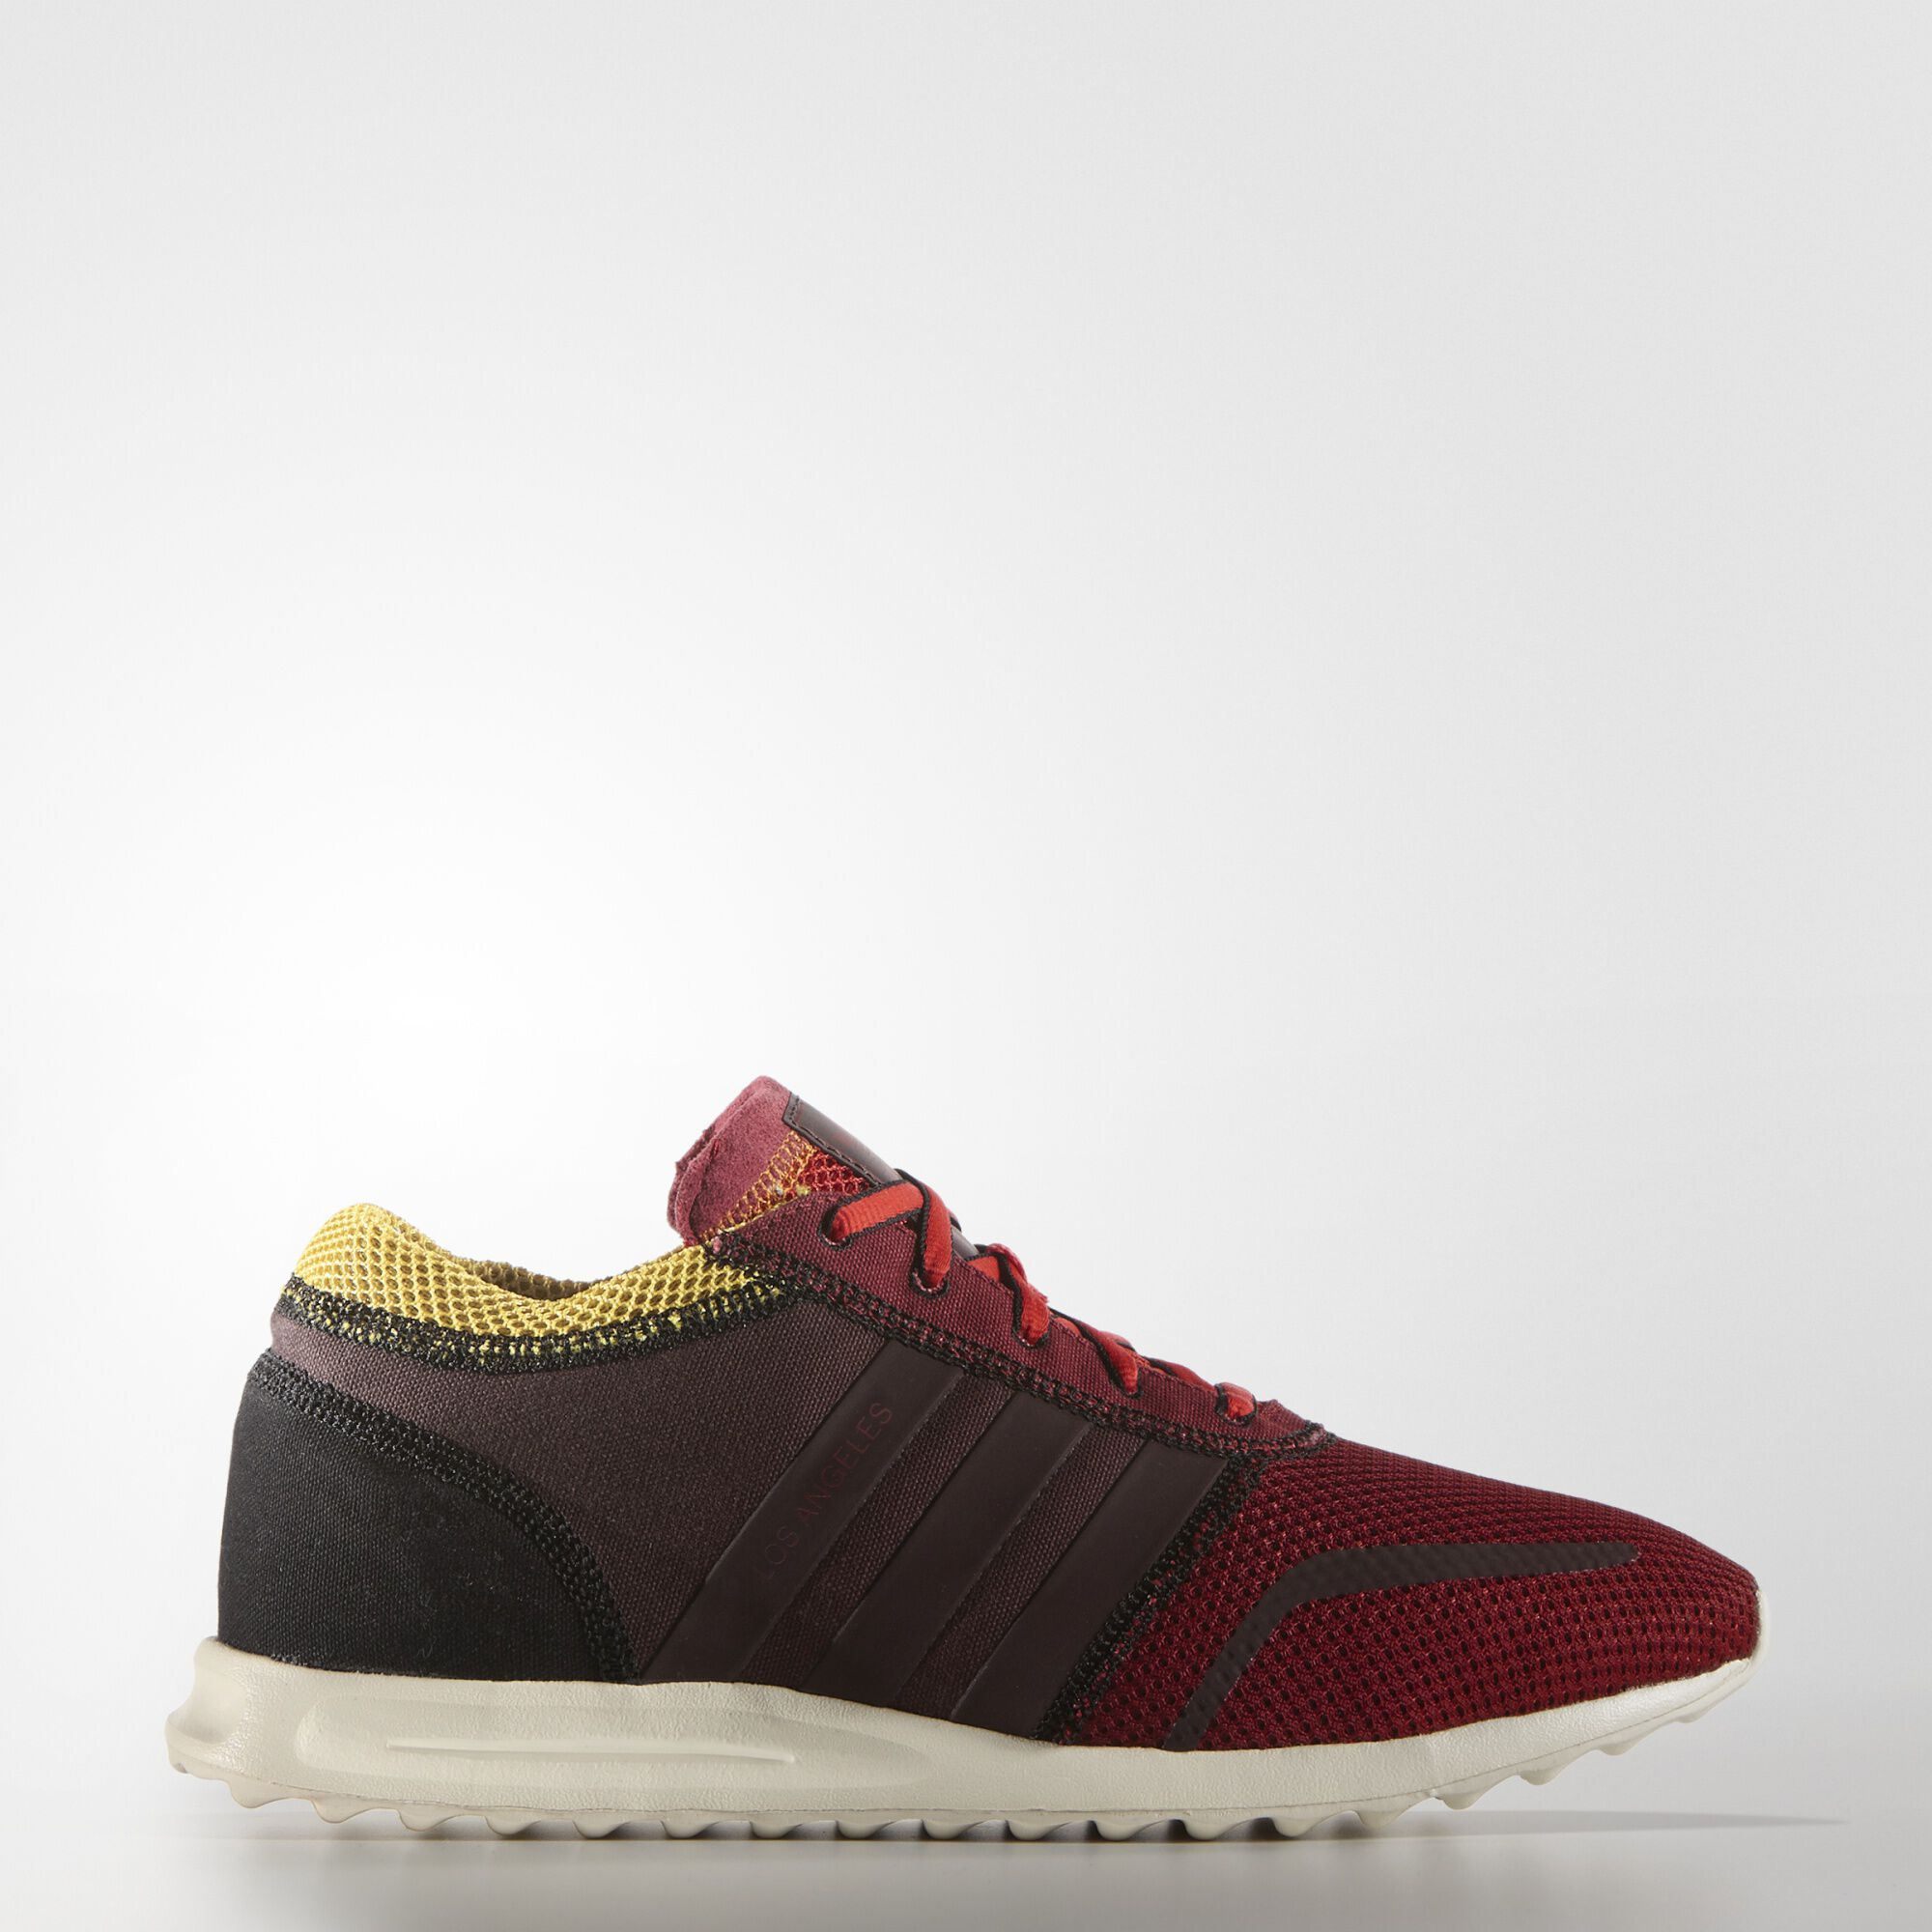 adidas outlet langley address